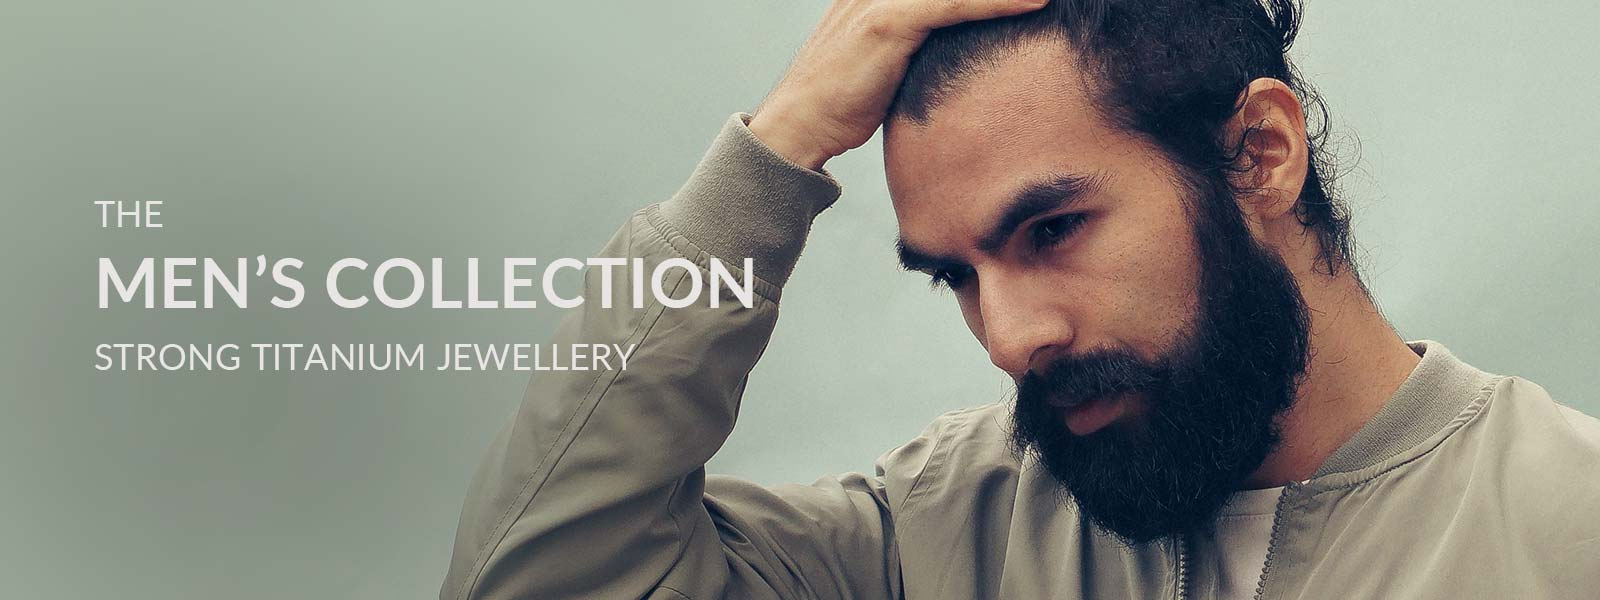 The Mens Collection of Strong Titanium Jewellery